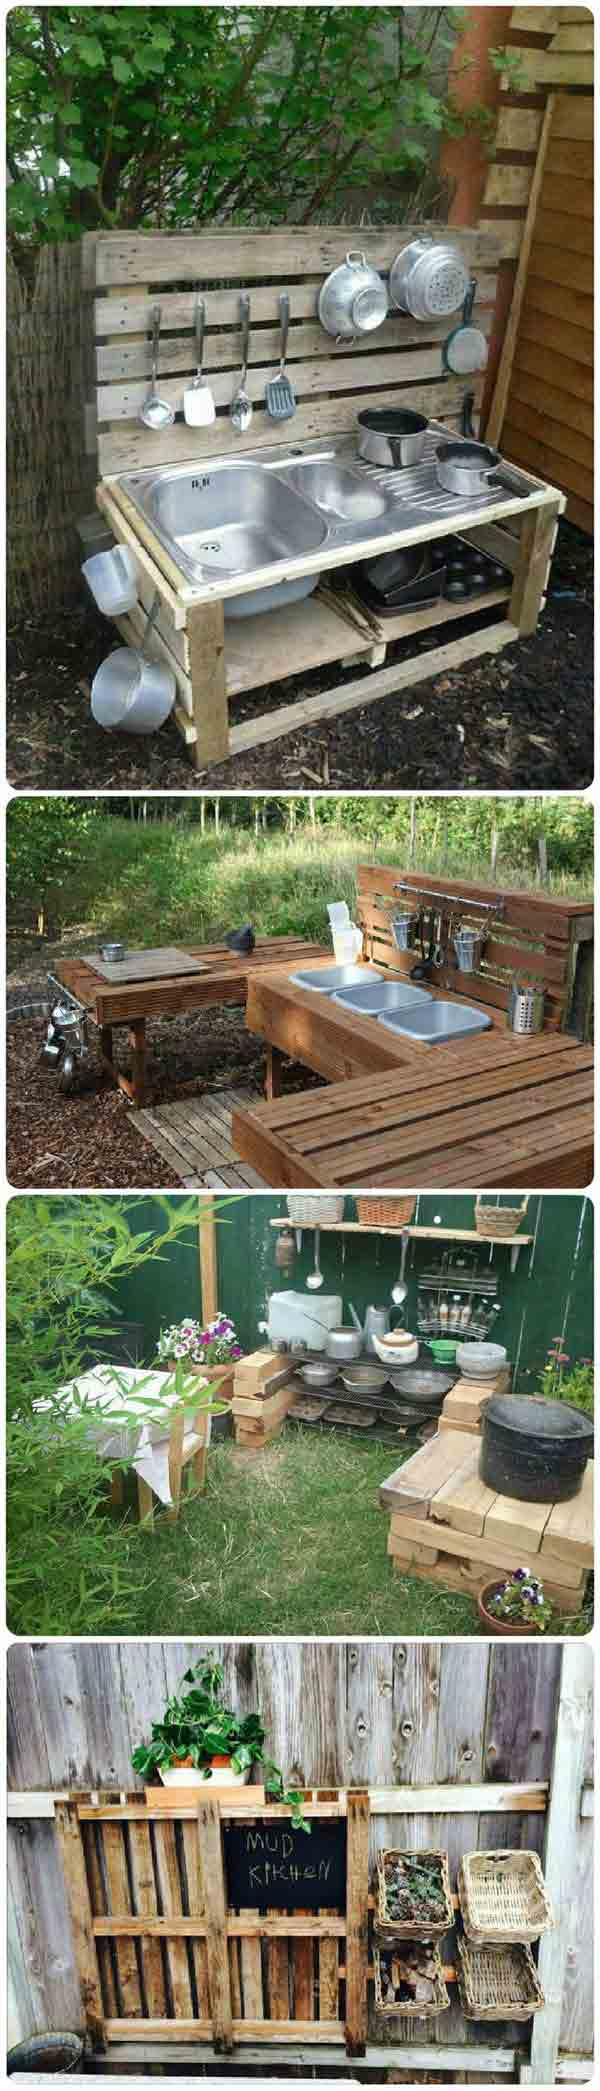 25 Playful Diy Backyard Projects To Surprise Your Kids Amazing Diy Interior Home Design